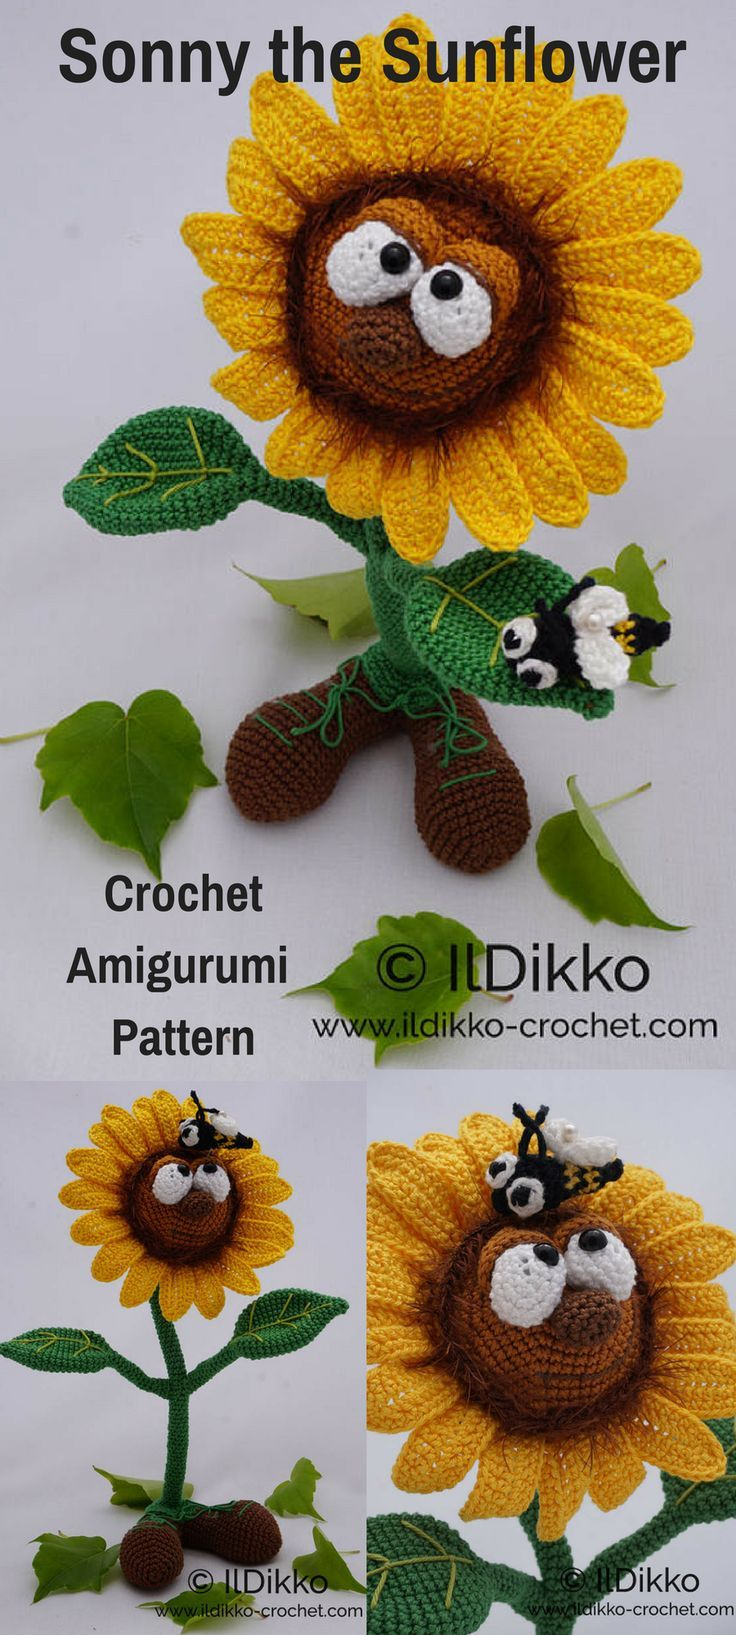 Sonny the Sunflower is a fun crocheted amigurumi doll that would love to walk around your garden. You can create your own Sonny the Sunflower with this downloadable pattern. #crochet #amigurumi #crochetdoll #ad #amigurumidoll #amigurumipattern #sunlower #instantdownload